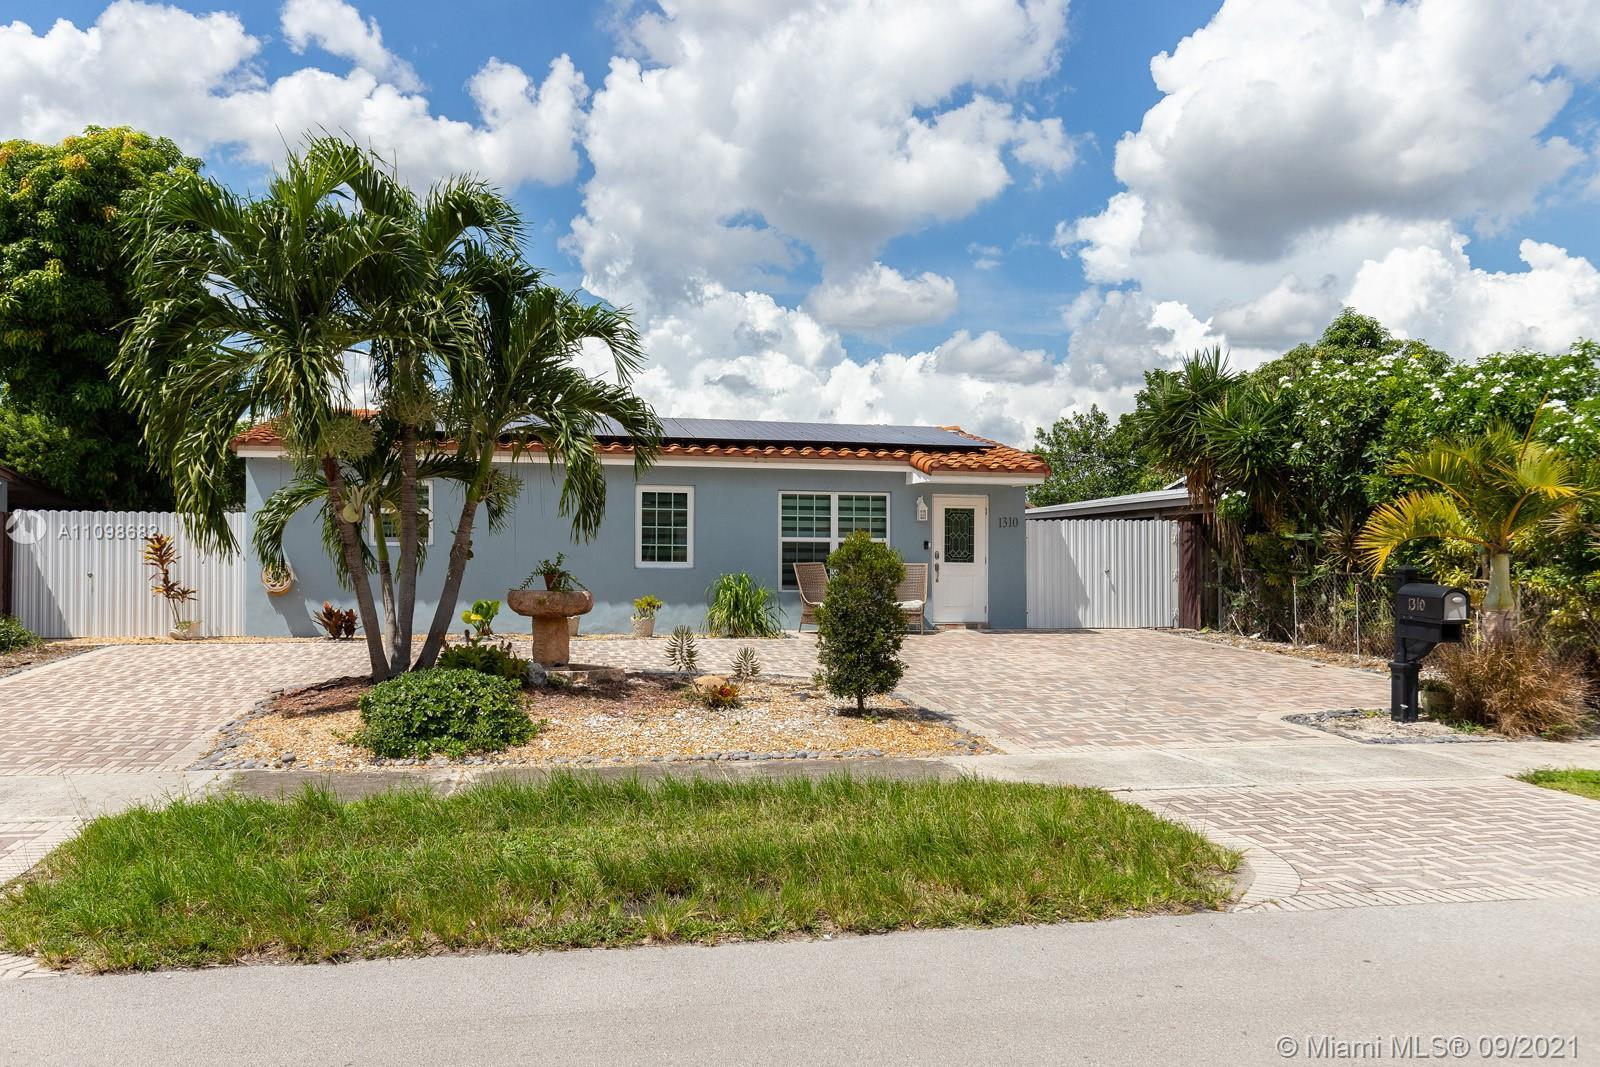 BEAUTIFUL RENOVATED ONE STORY SINGLE FAMILY HOME 4BEDS/3BATHS. MODERN KITCHEN, QUARTZ COUNTER-TOPS,